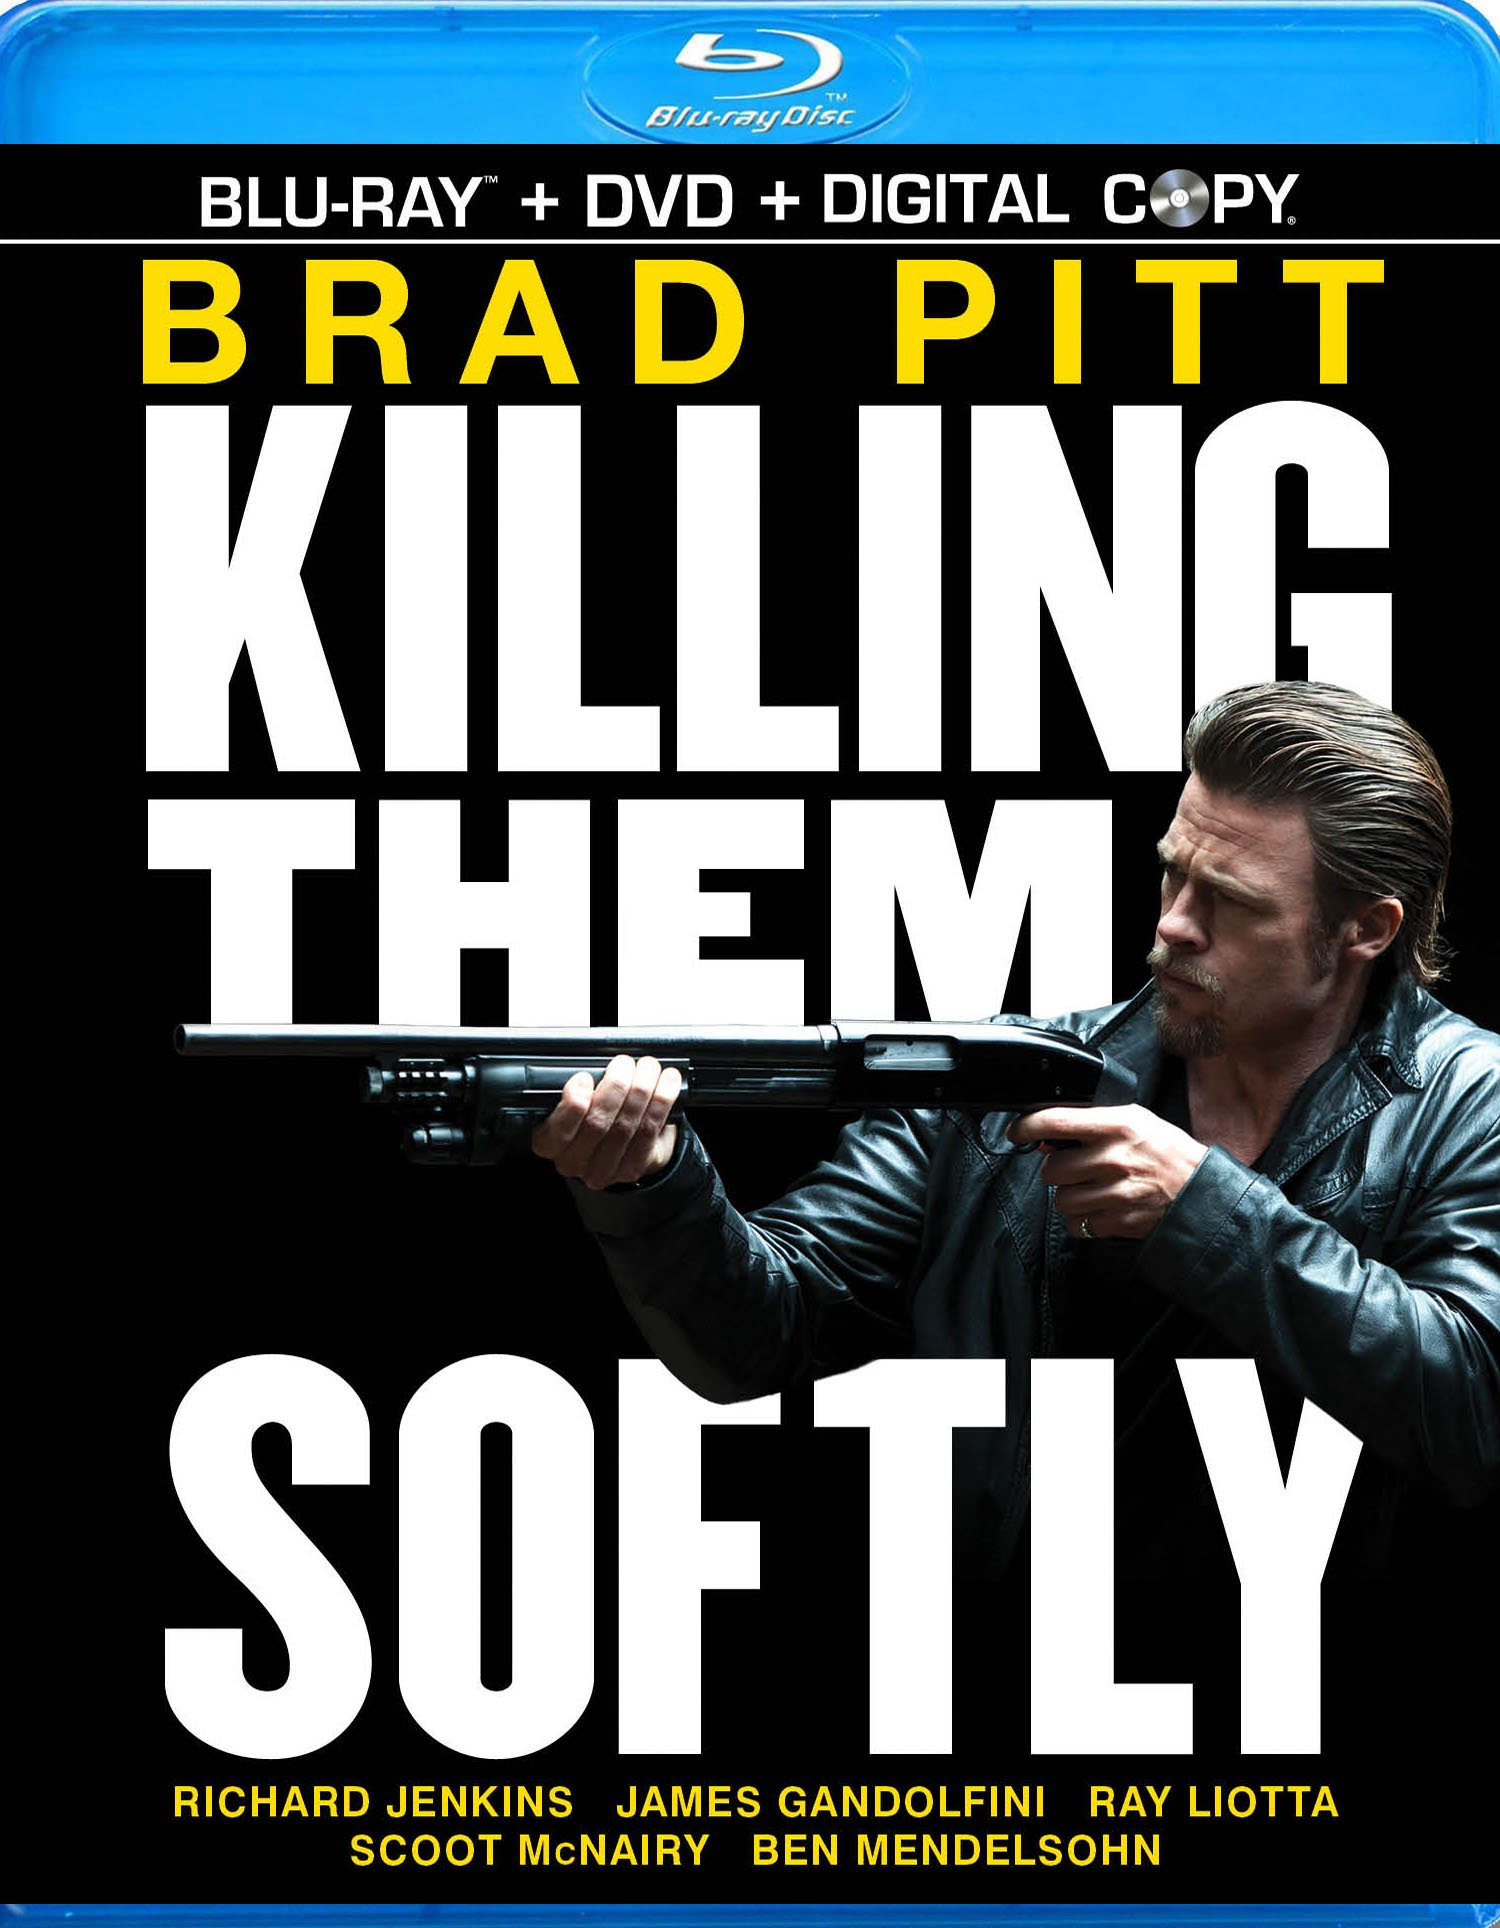 Blu-ray : Killing Them Softly (With DVD, 3 Pack, Digital Copy, 3PC)